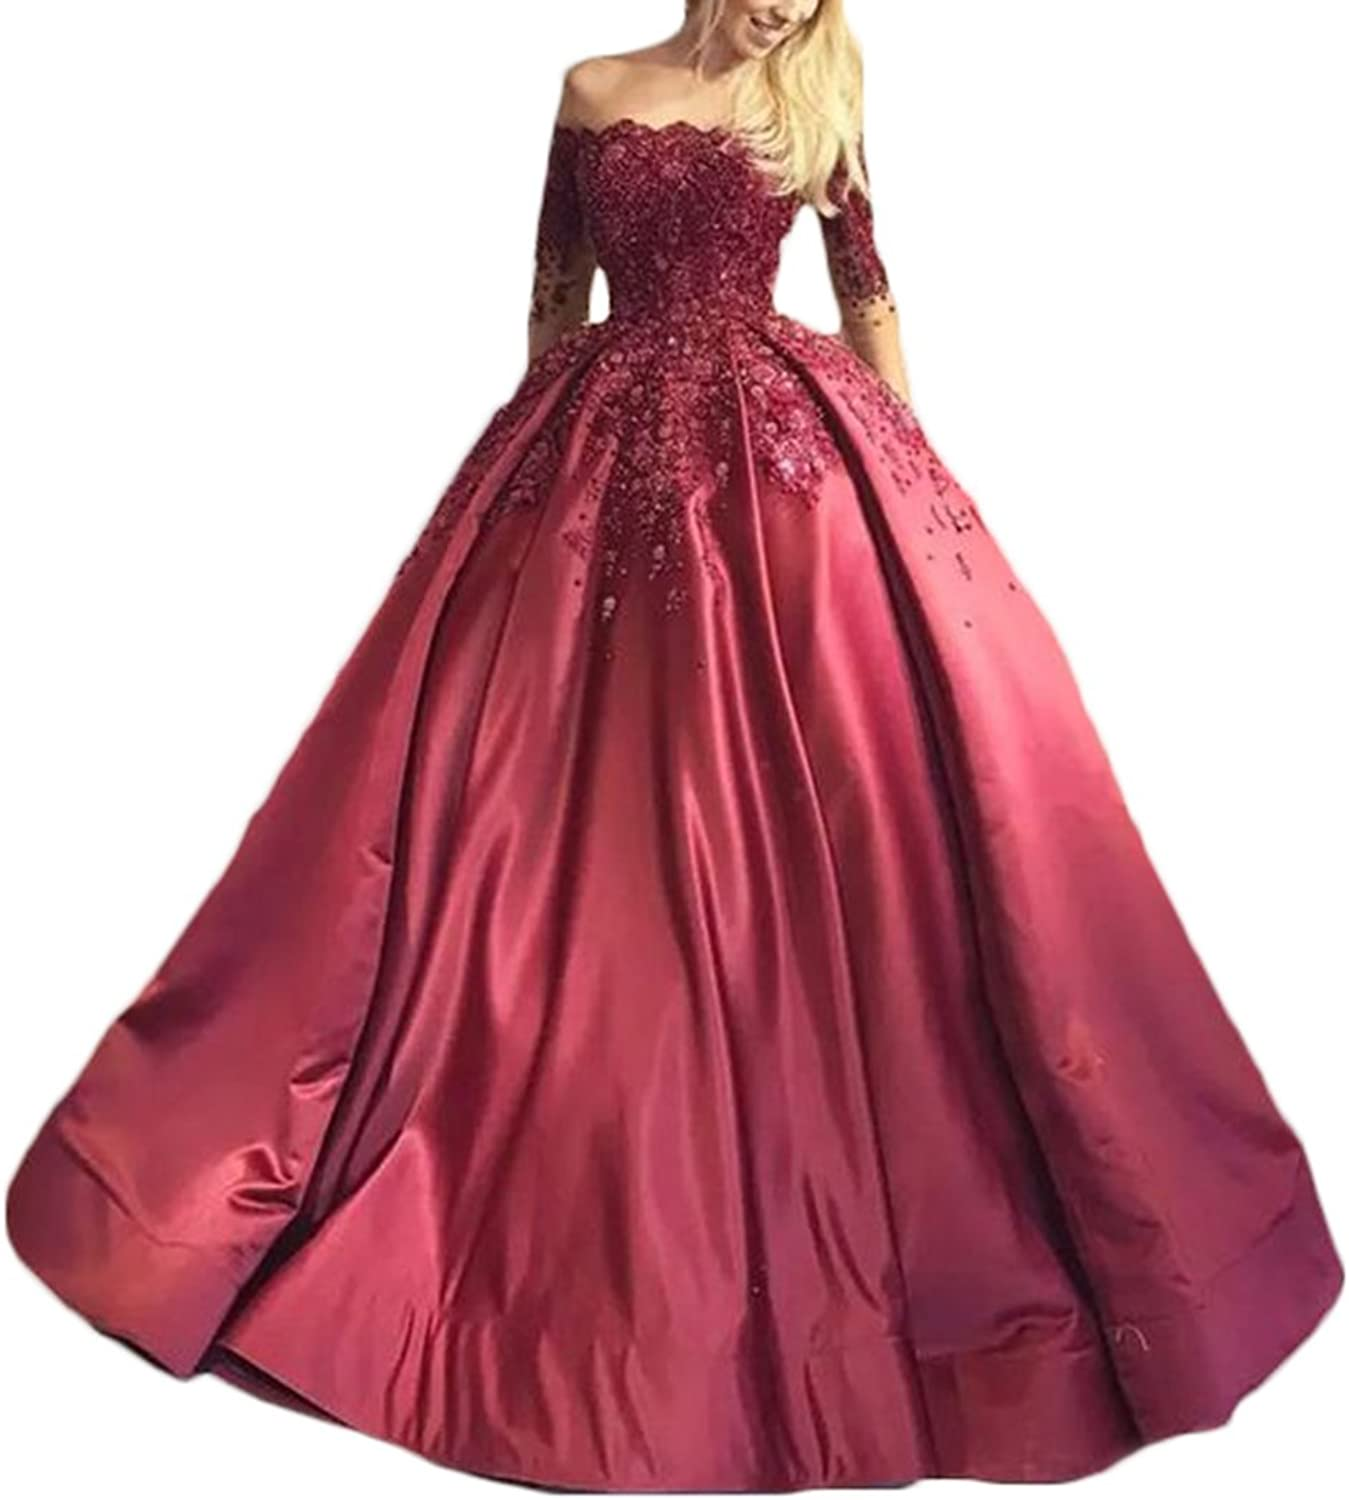 Ri Yun Off Shoulder Appliques Beaded Long Sleeves Ball Gown Quinceanera Dresses Formal Evening Party Gowns for Women 2018